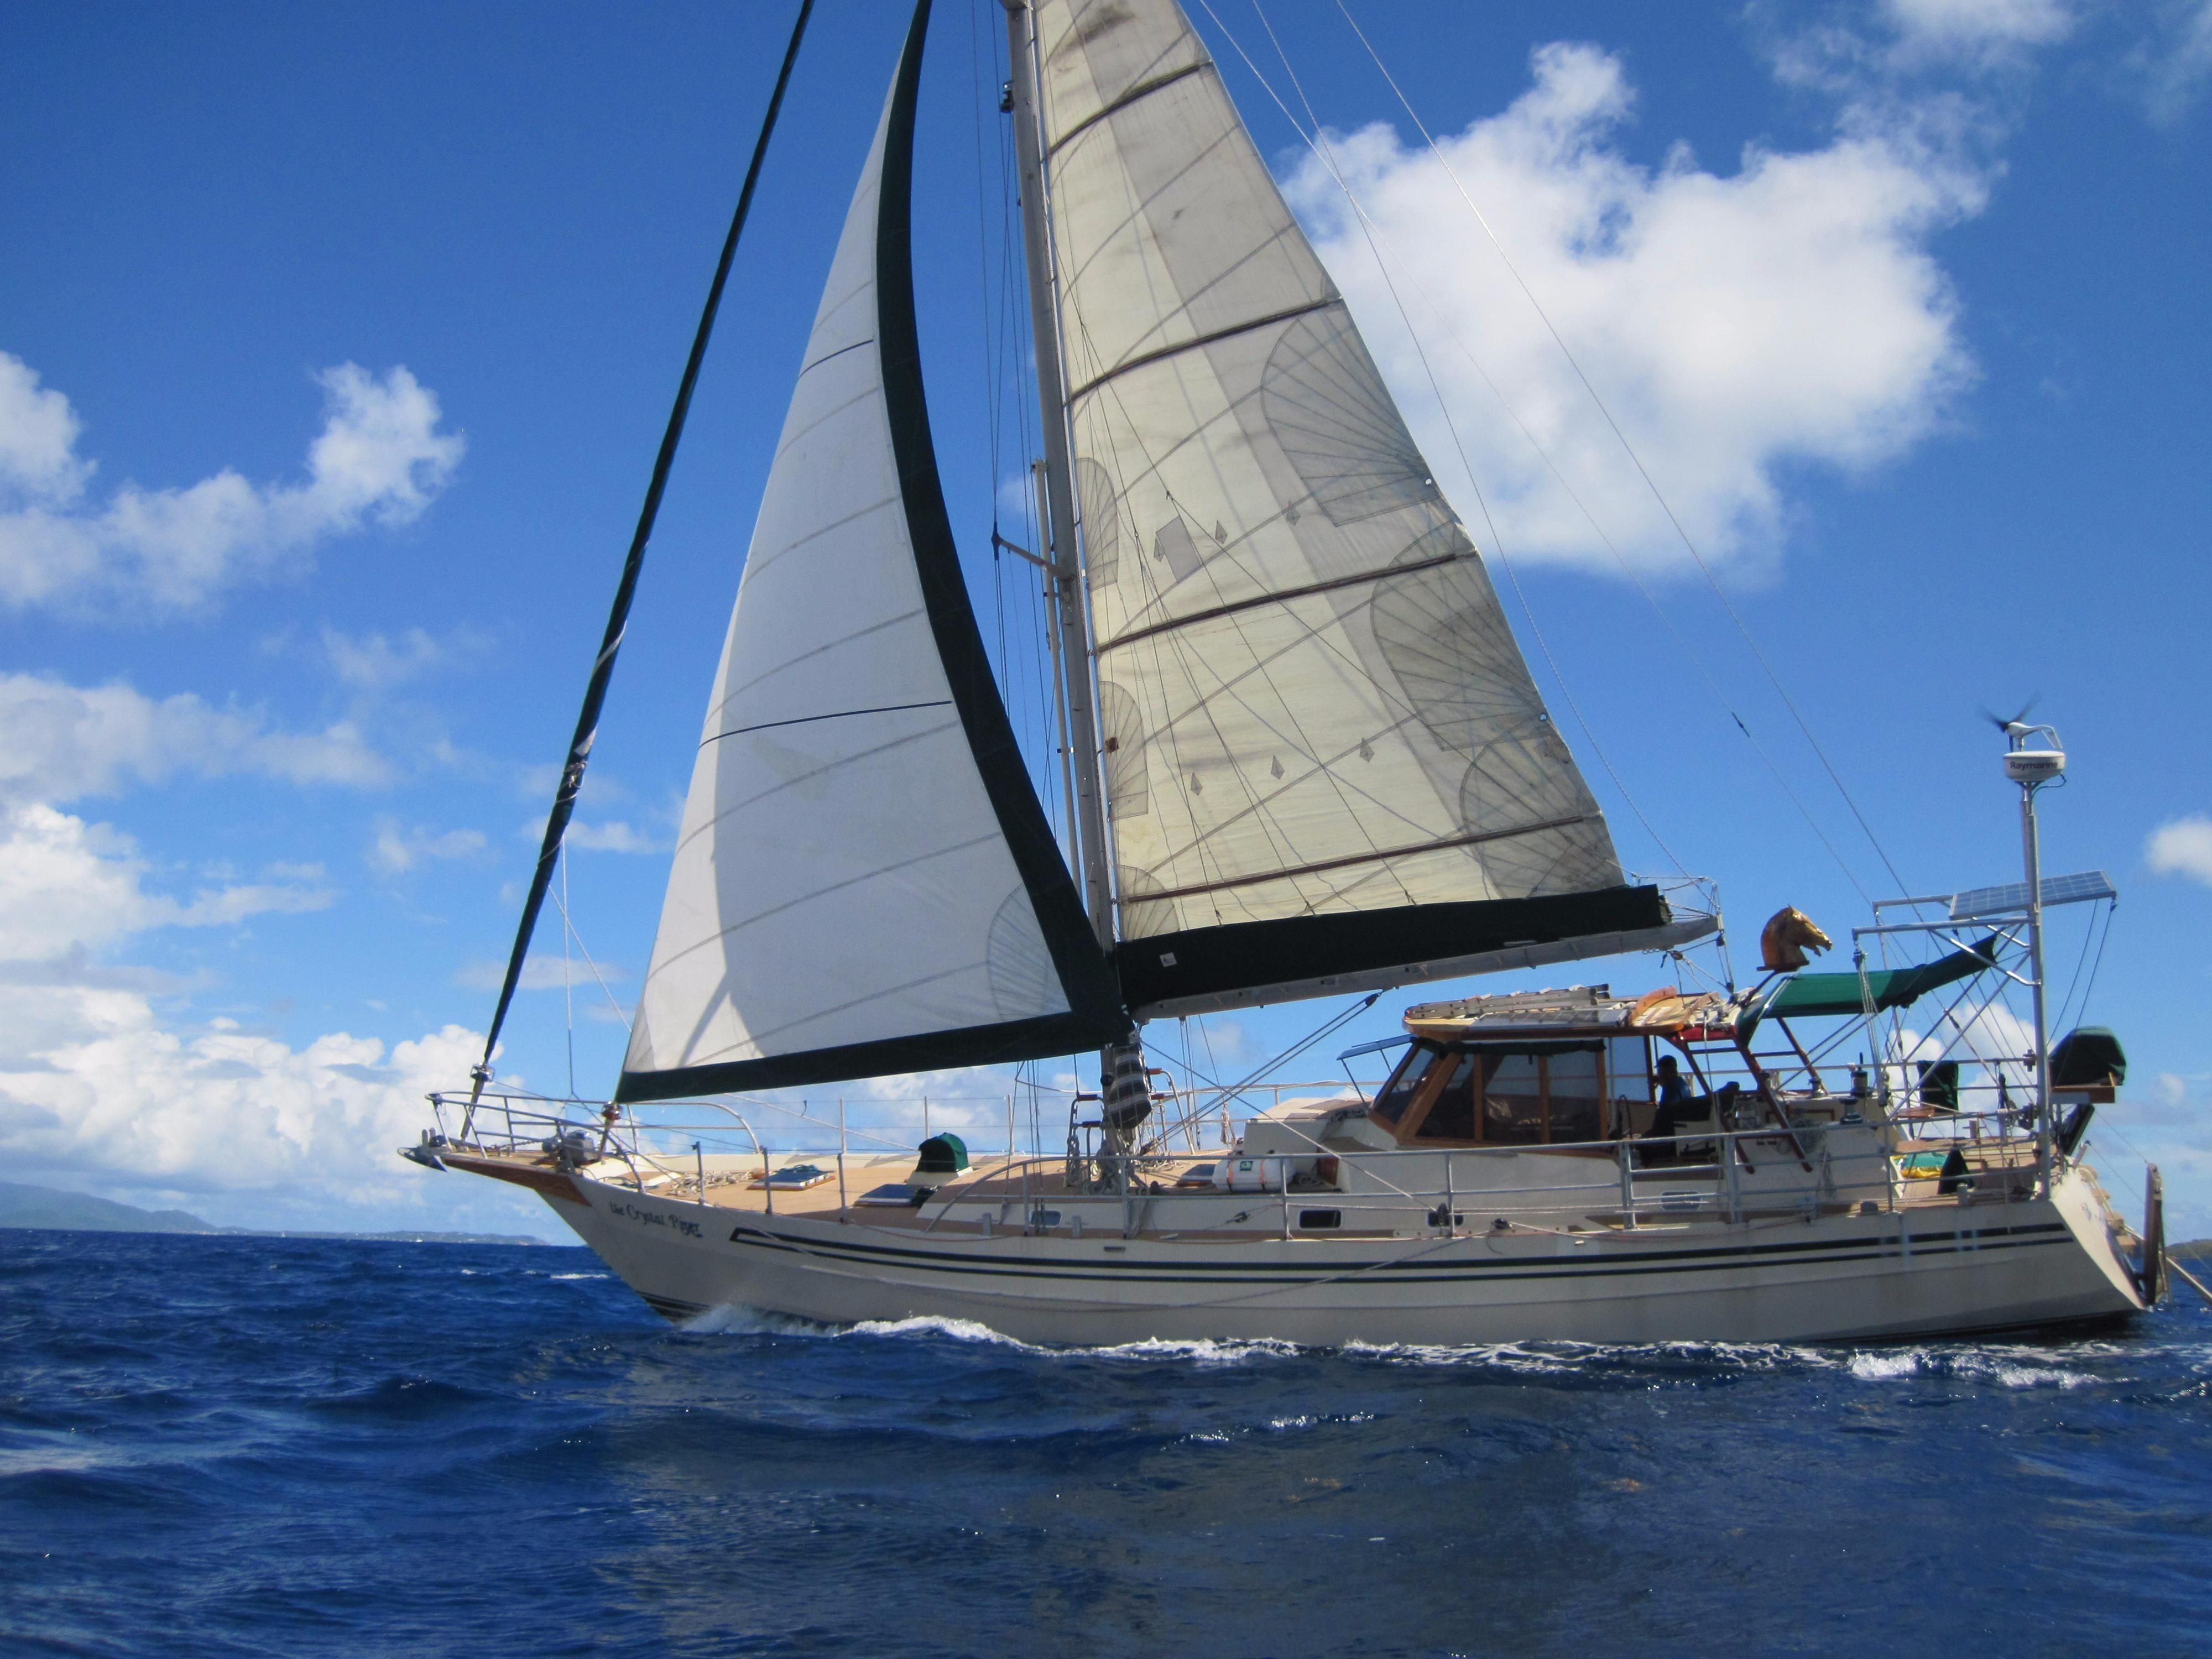 1984 Aluminum Boat Co 65 Sail Boat For Sale Www